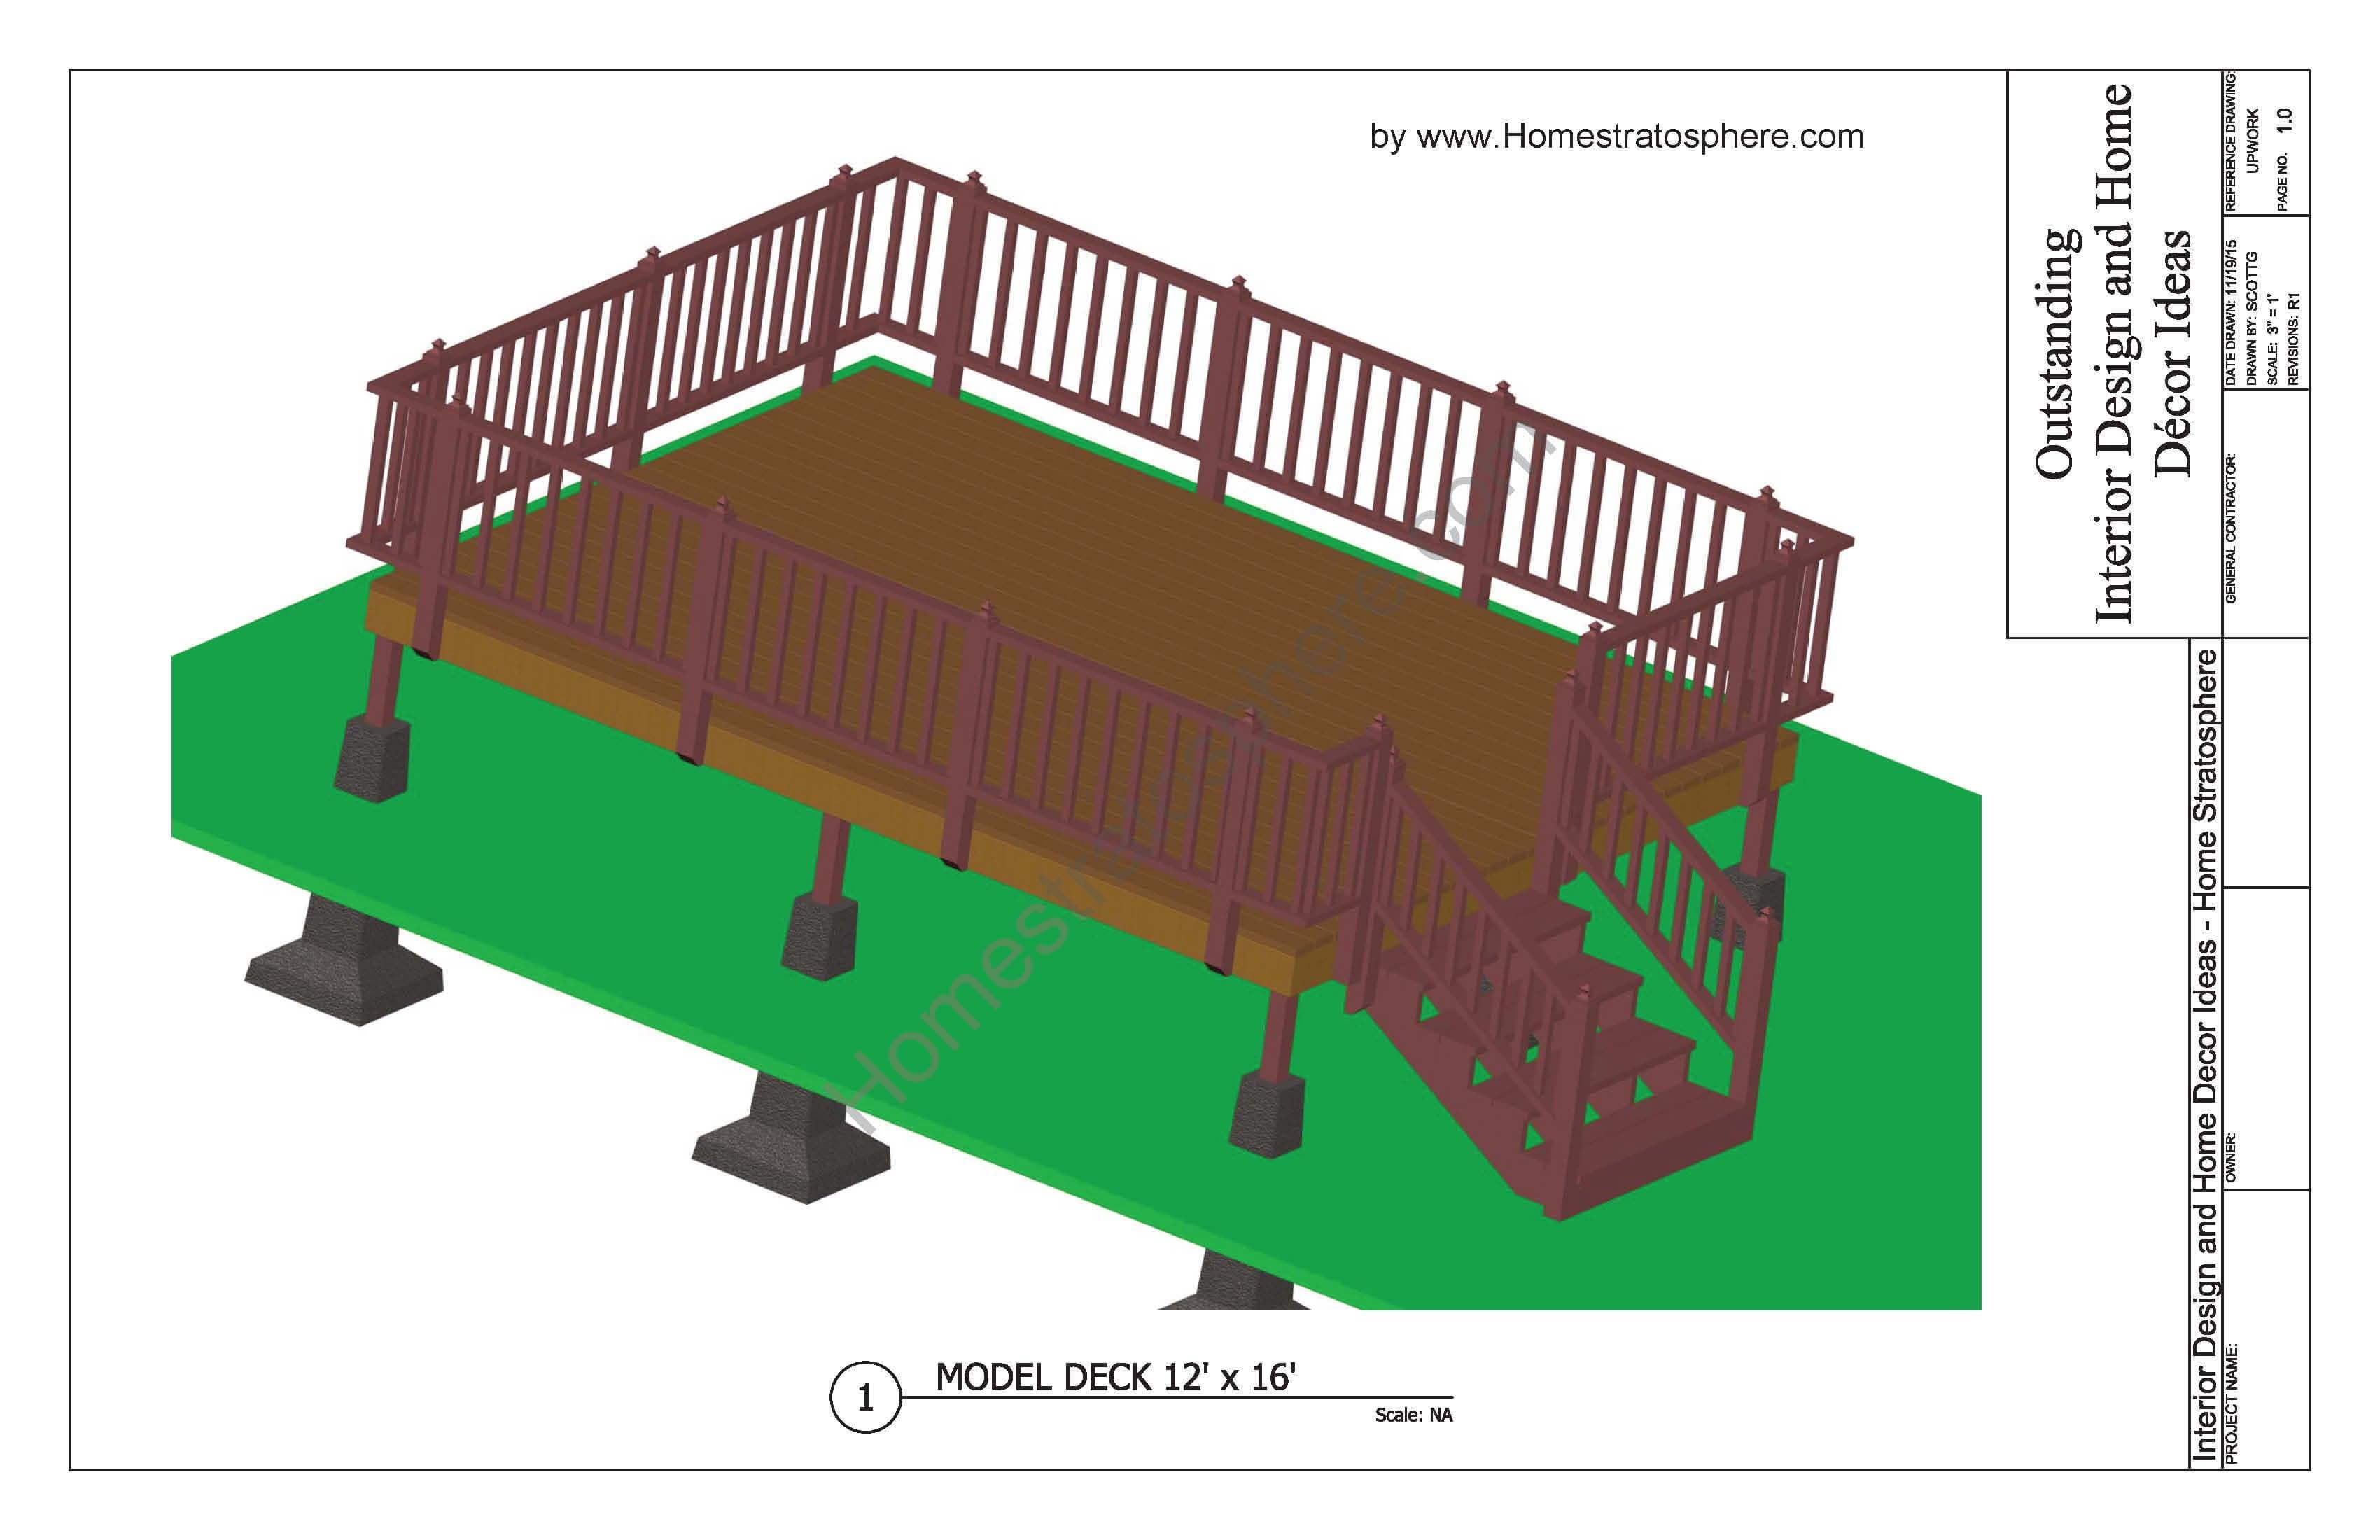 Free Deck Plans And Blueprints Online With Pdf Downloads Free